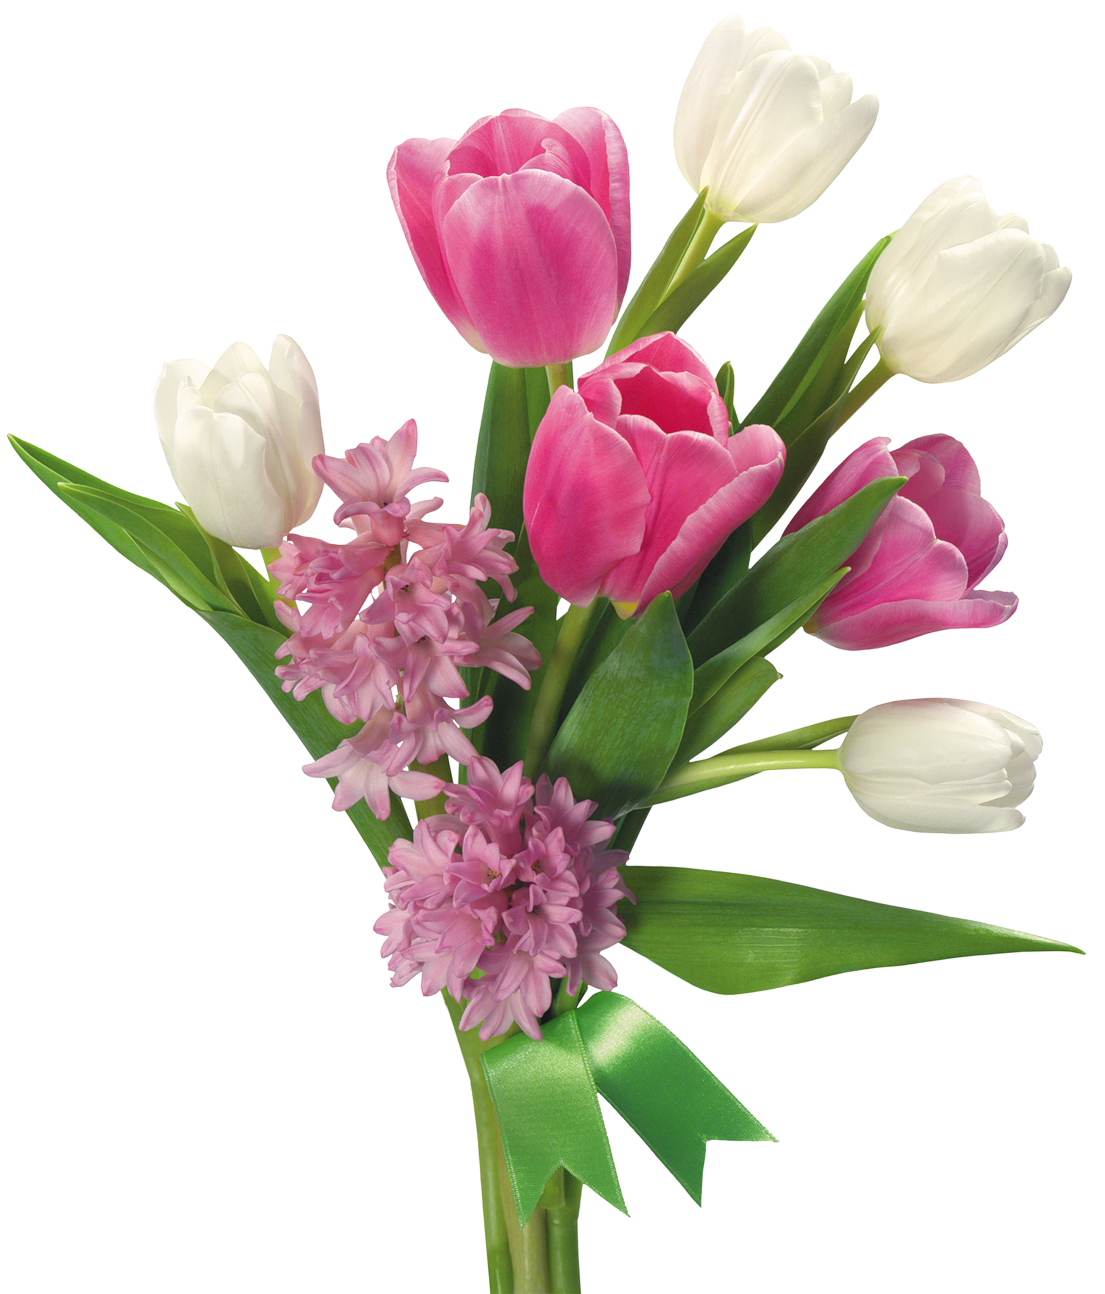 Spring flower bouquet images png. Of tulips and hyacinths